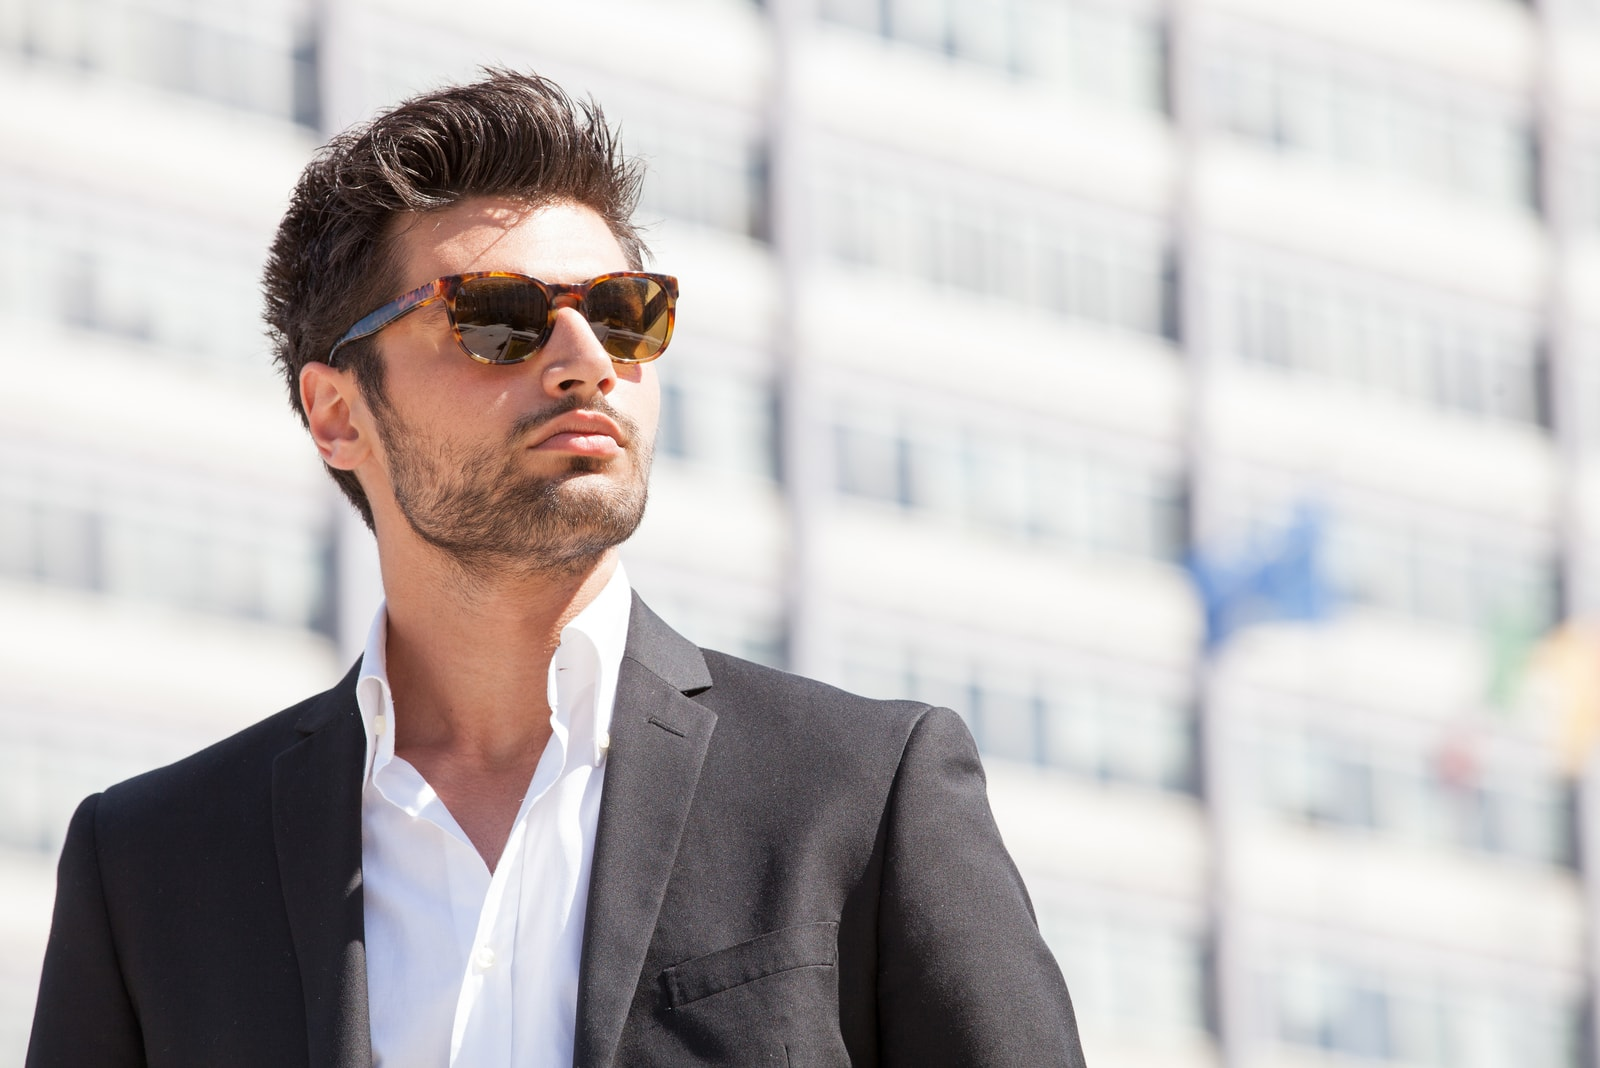 handsome man in suit wearing sunglasses